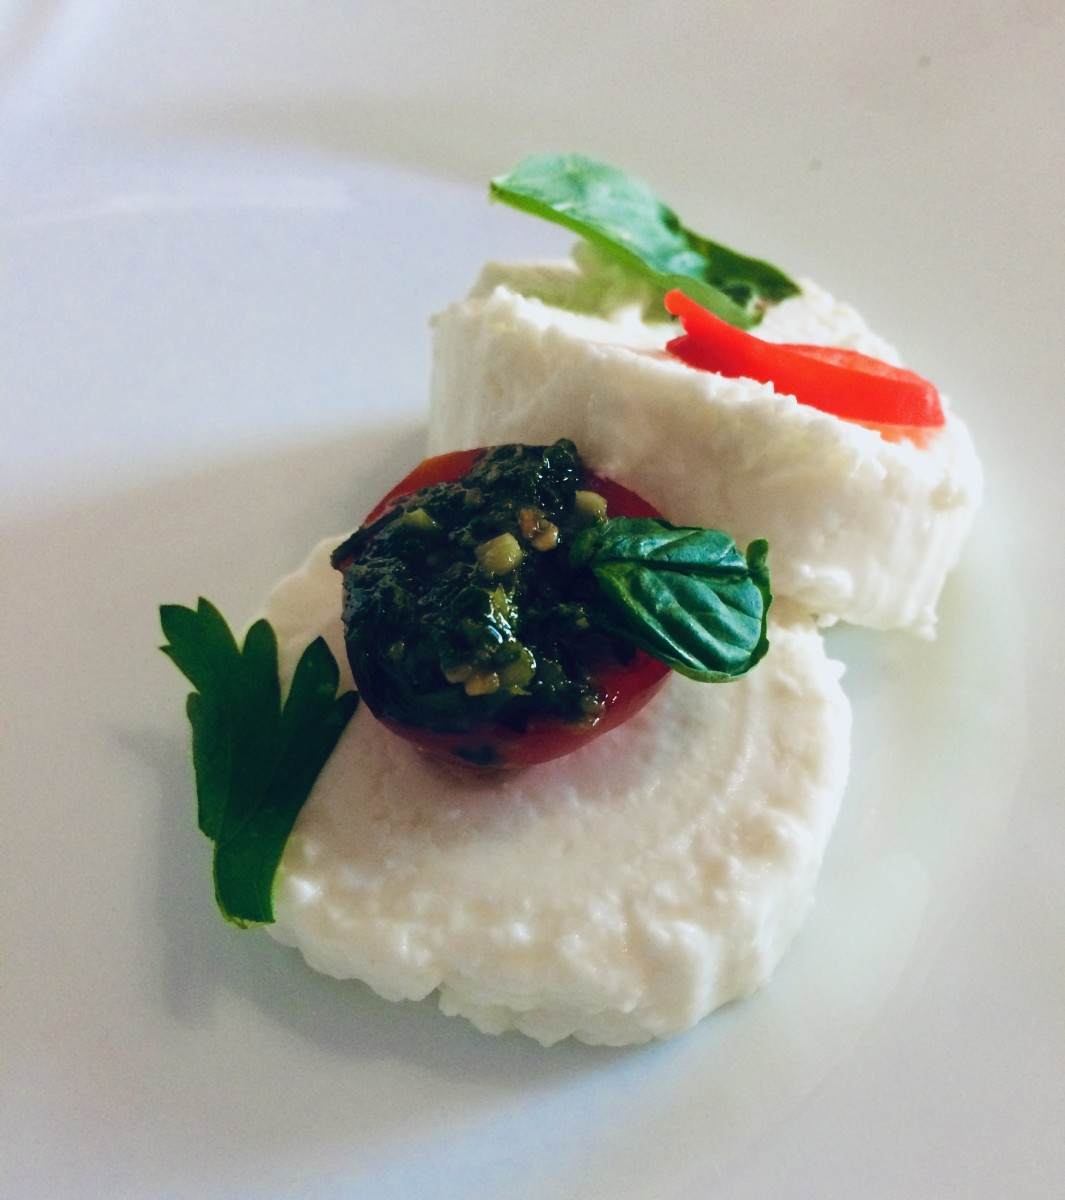 Goat Cheese and Pesto-Filled Cherry Tomatoes